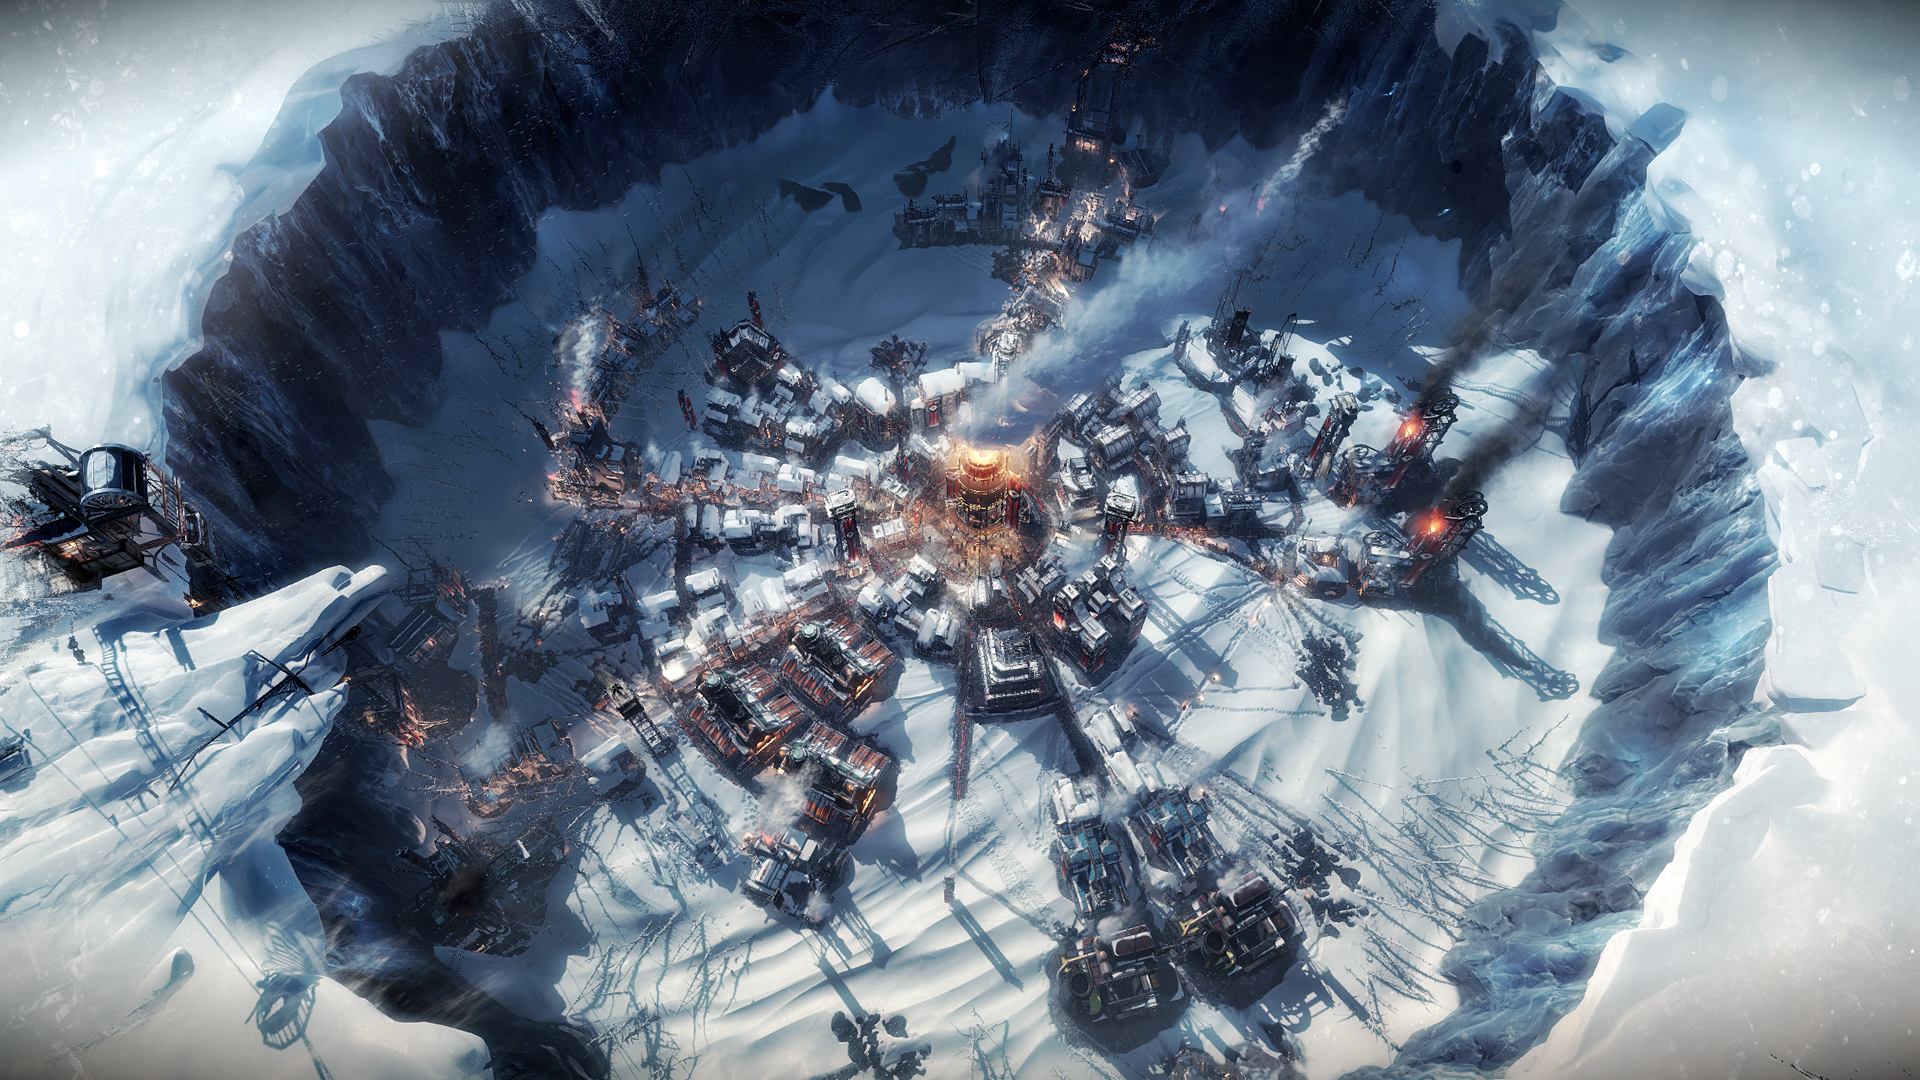 The city in Frostpunk